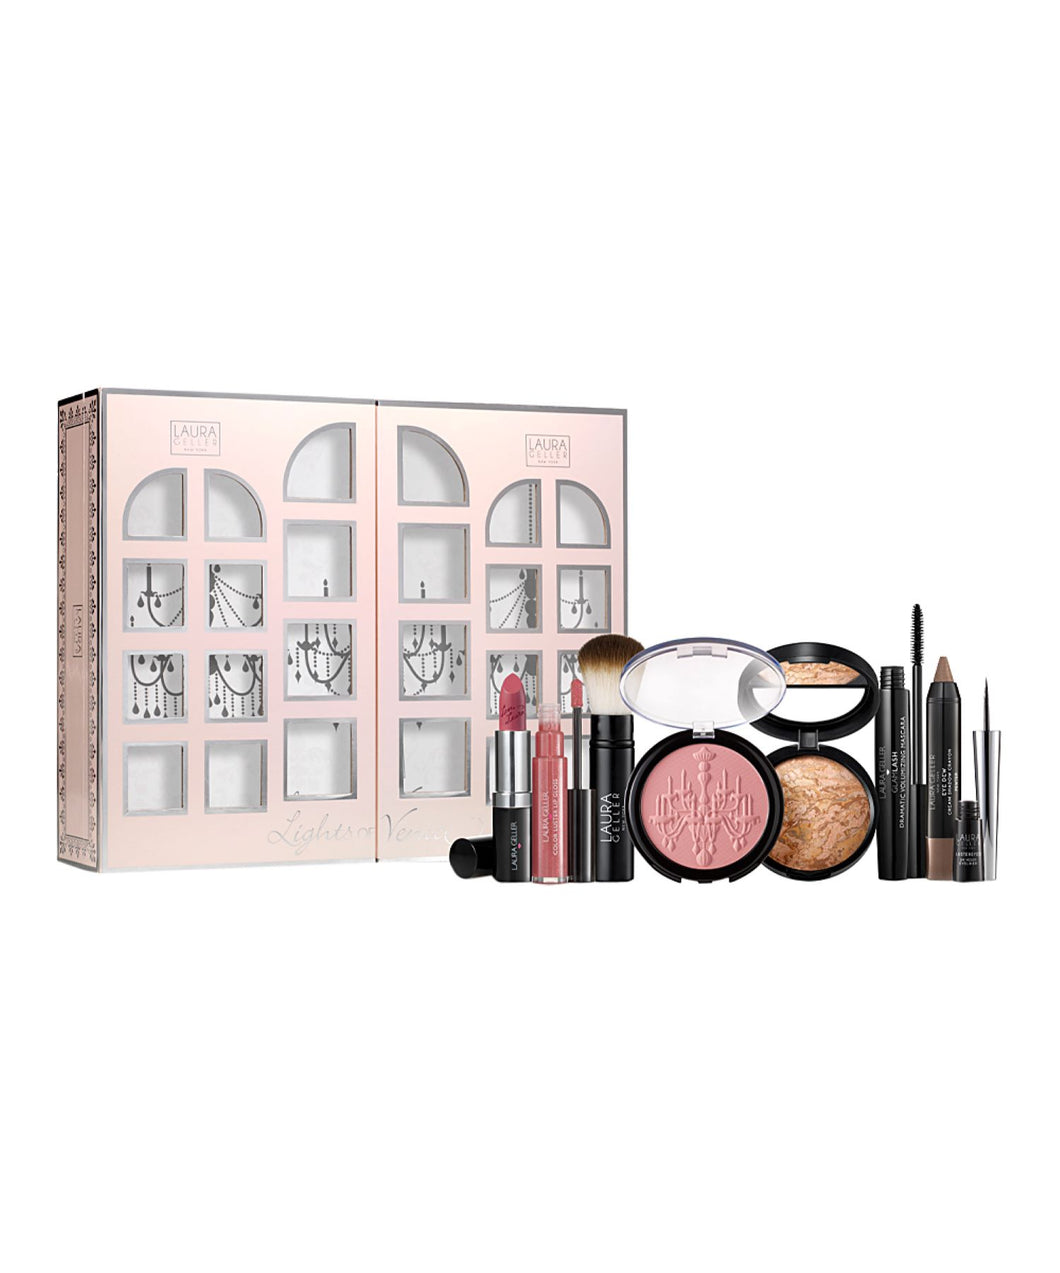 Lights of Venice - 8 pc Luminous Beauty Kit